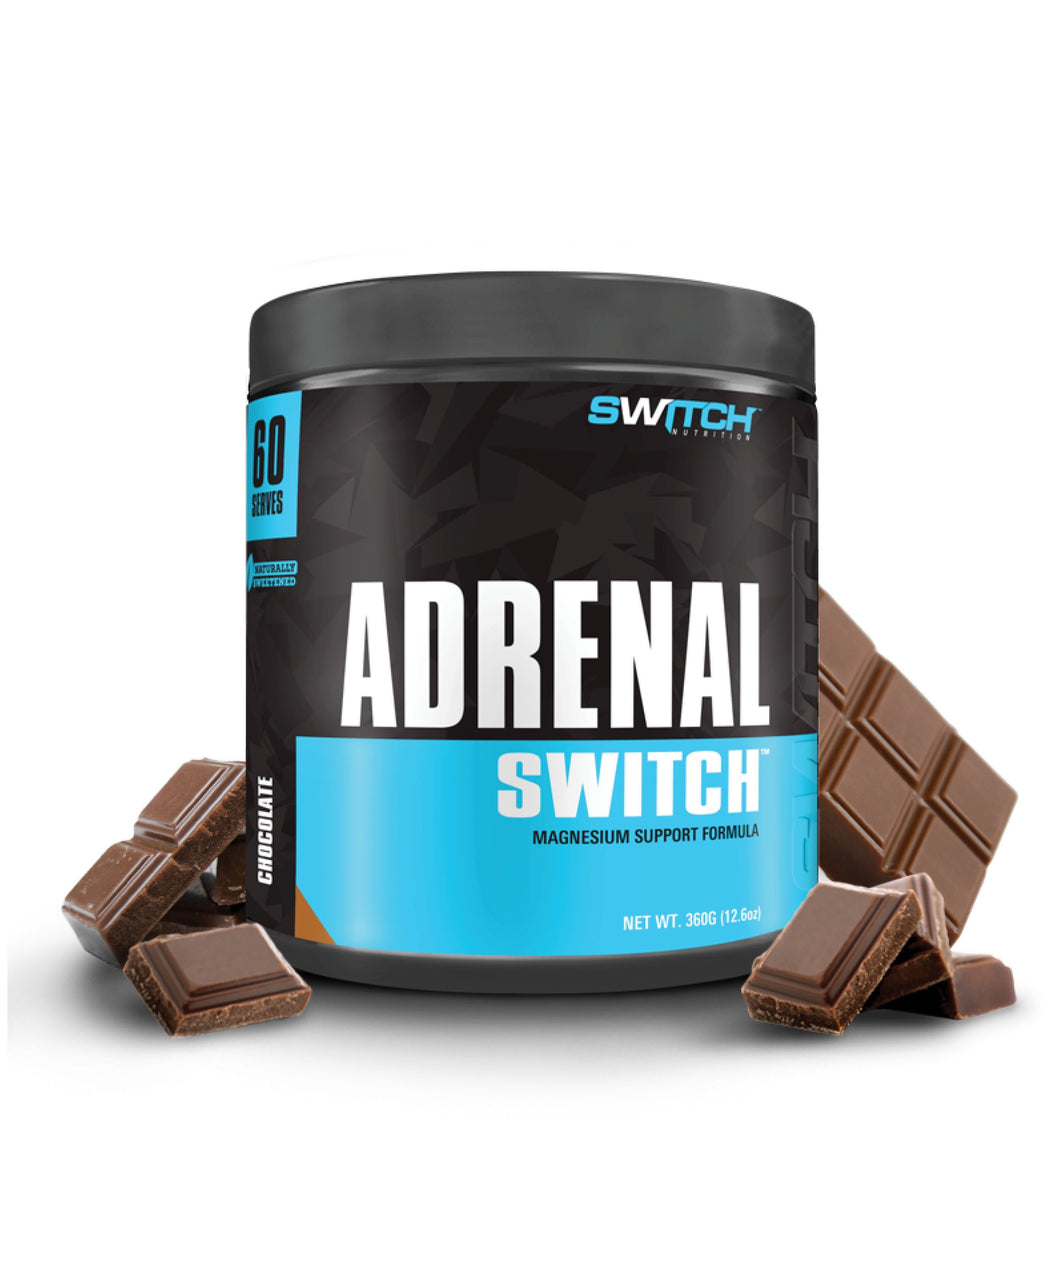 Adrenal Switch - Australian Distributor - Oxygen Nutrition